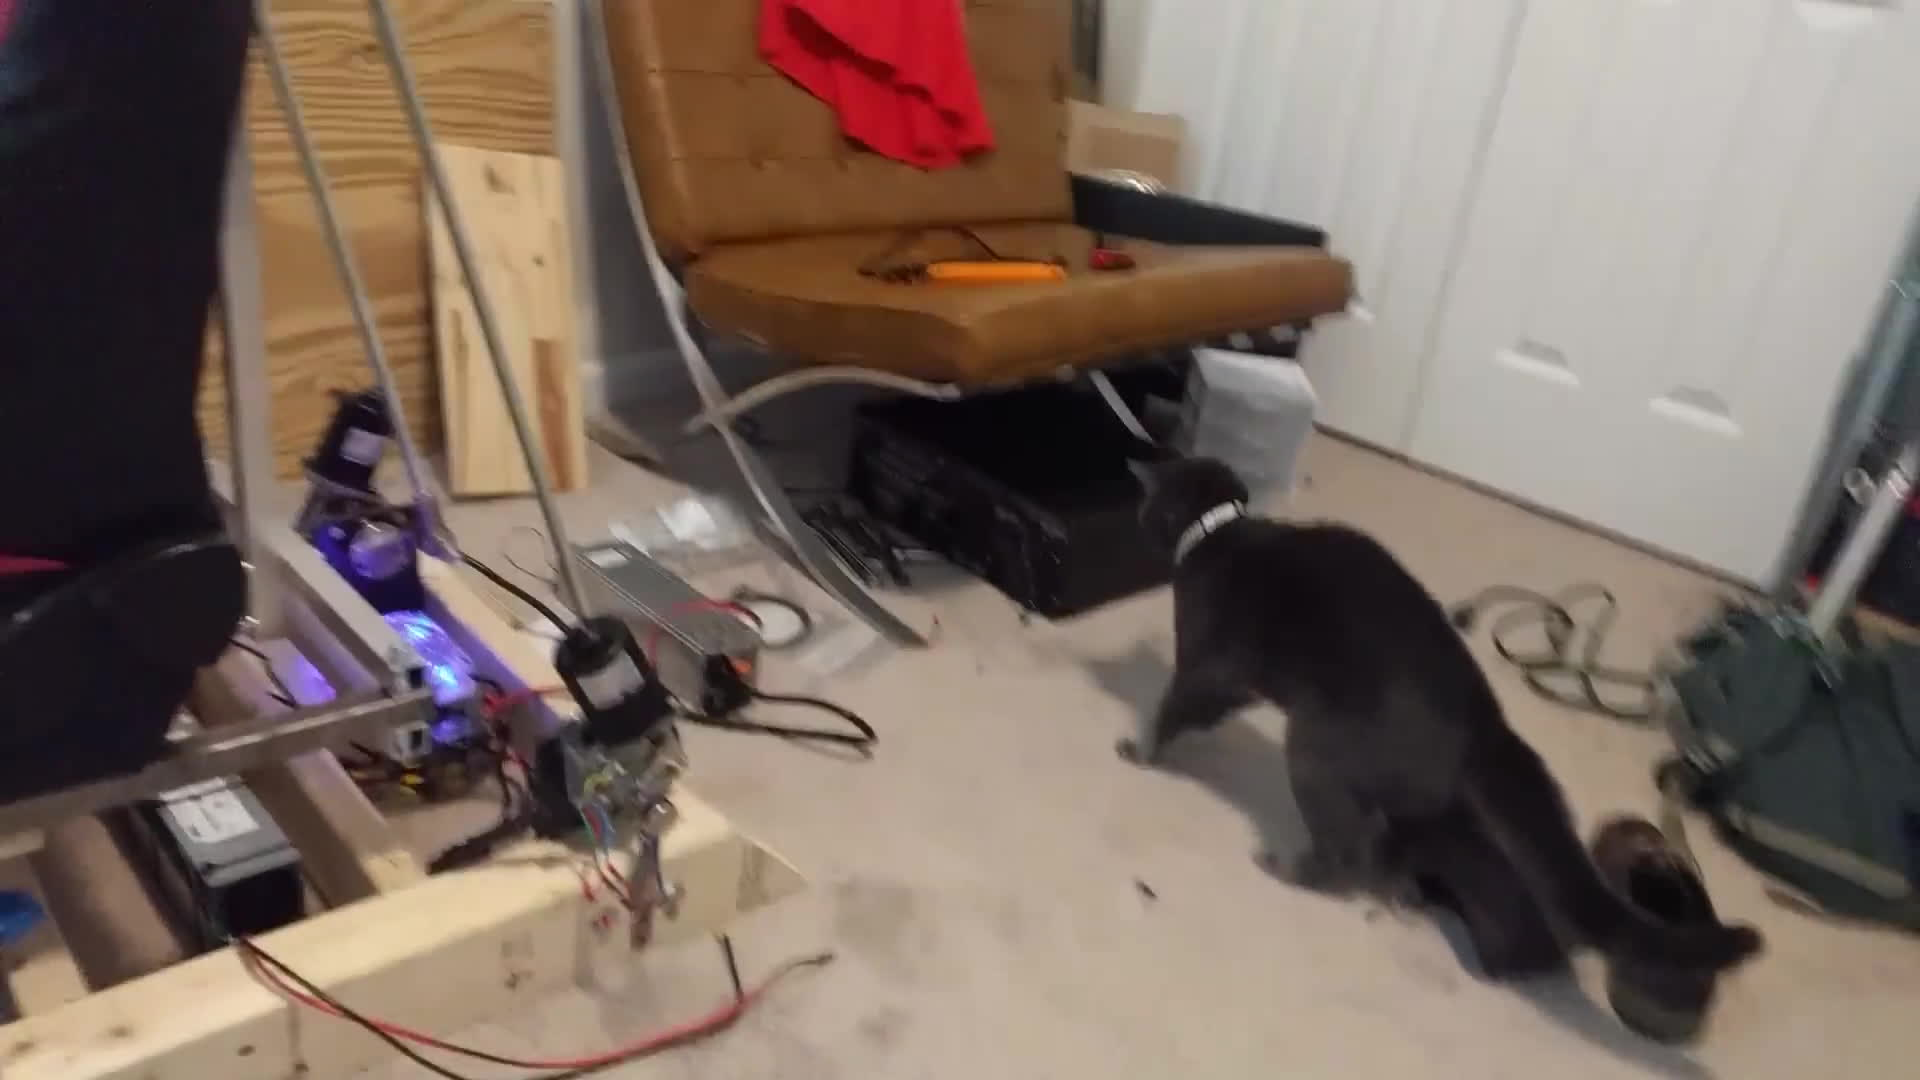 Sushi startled by miscellaneous electronics GIFs